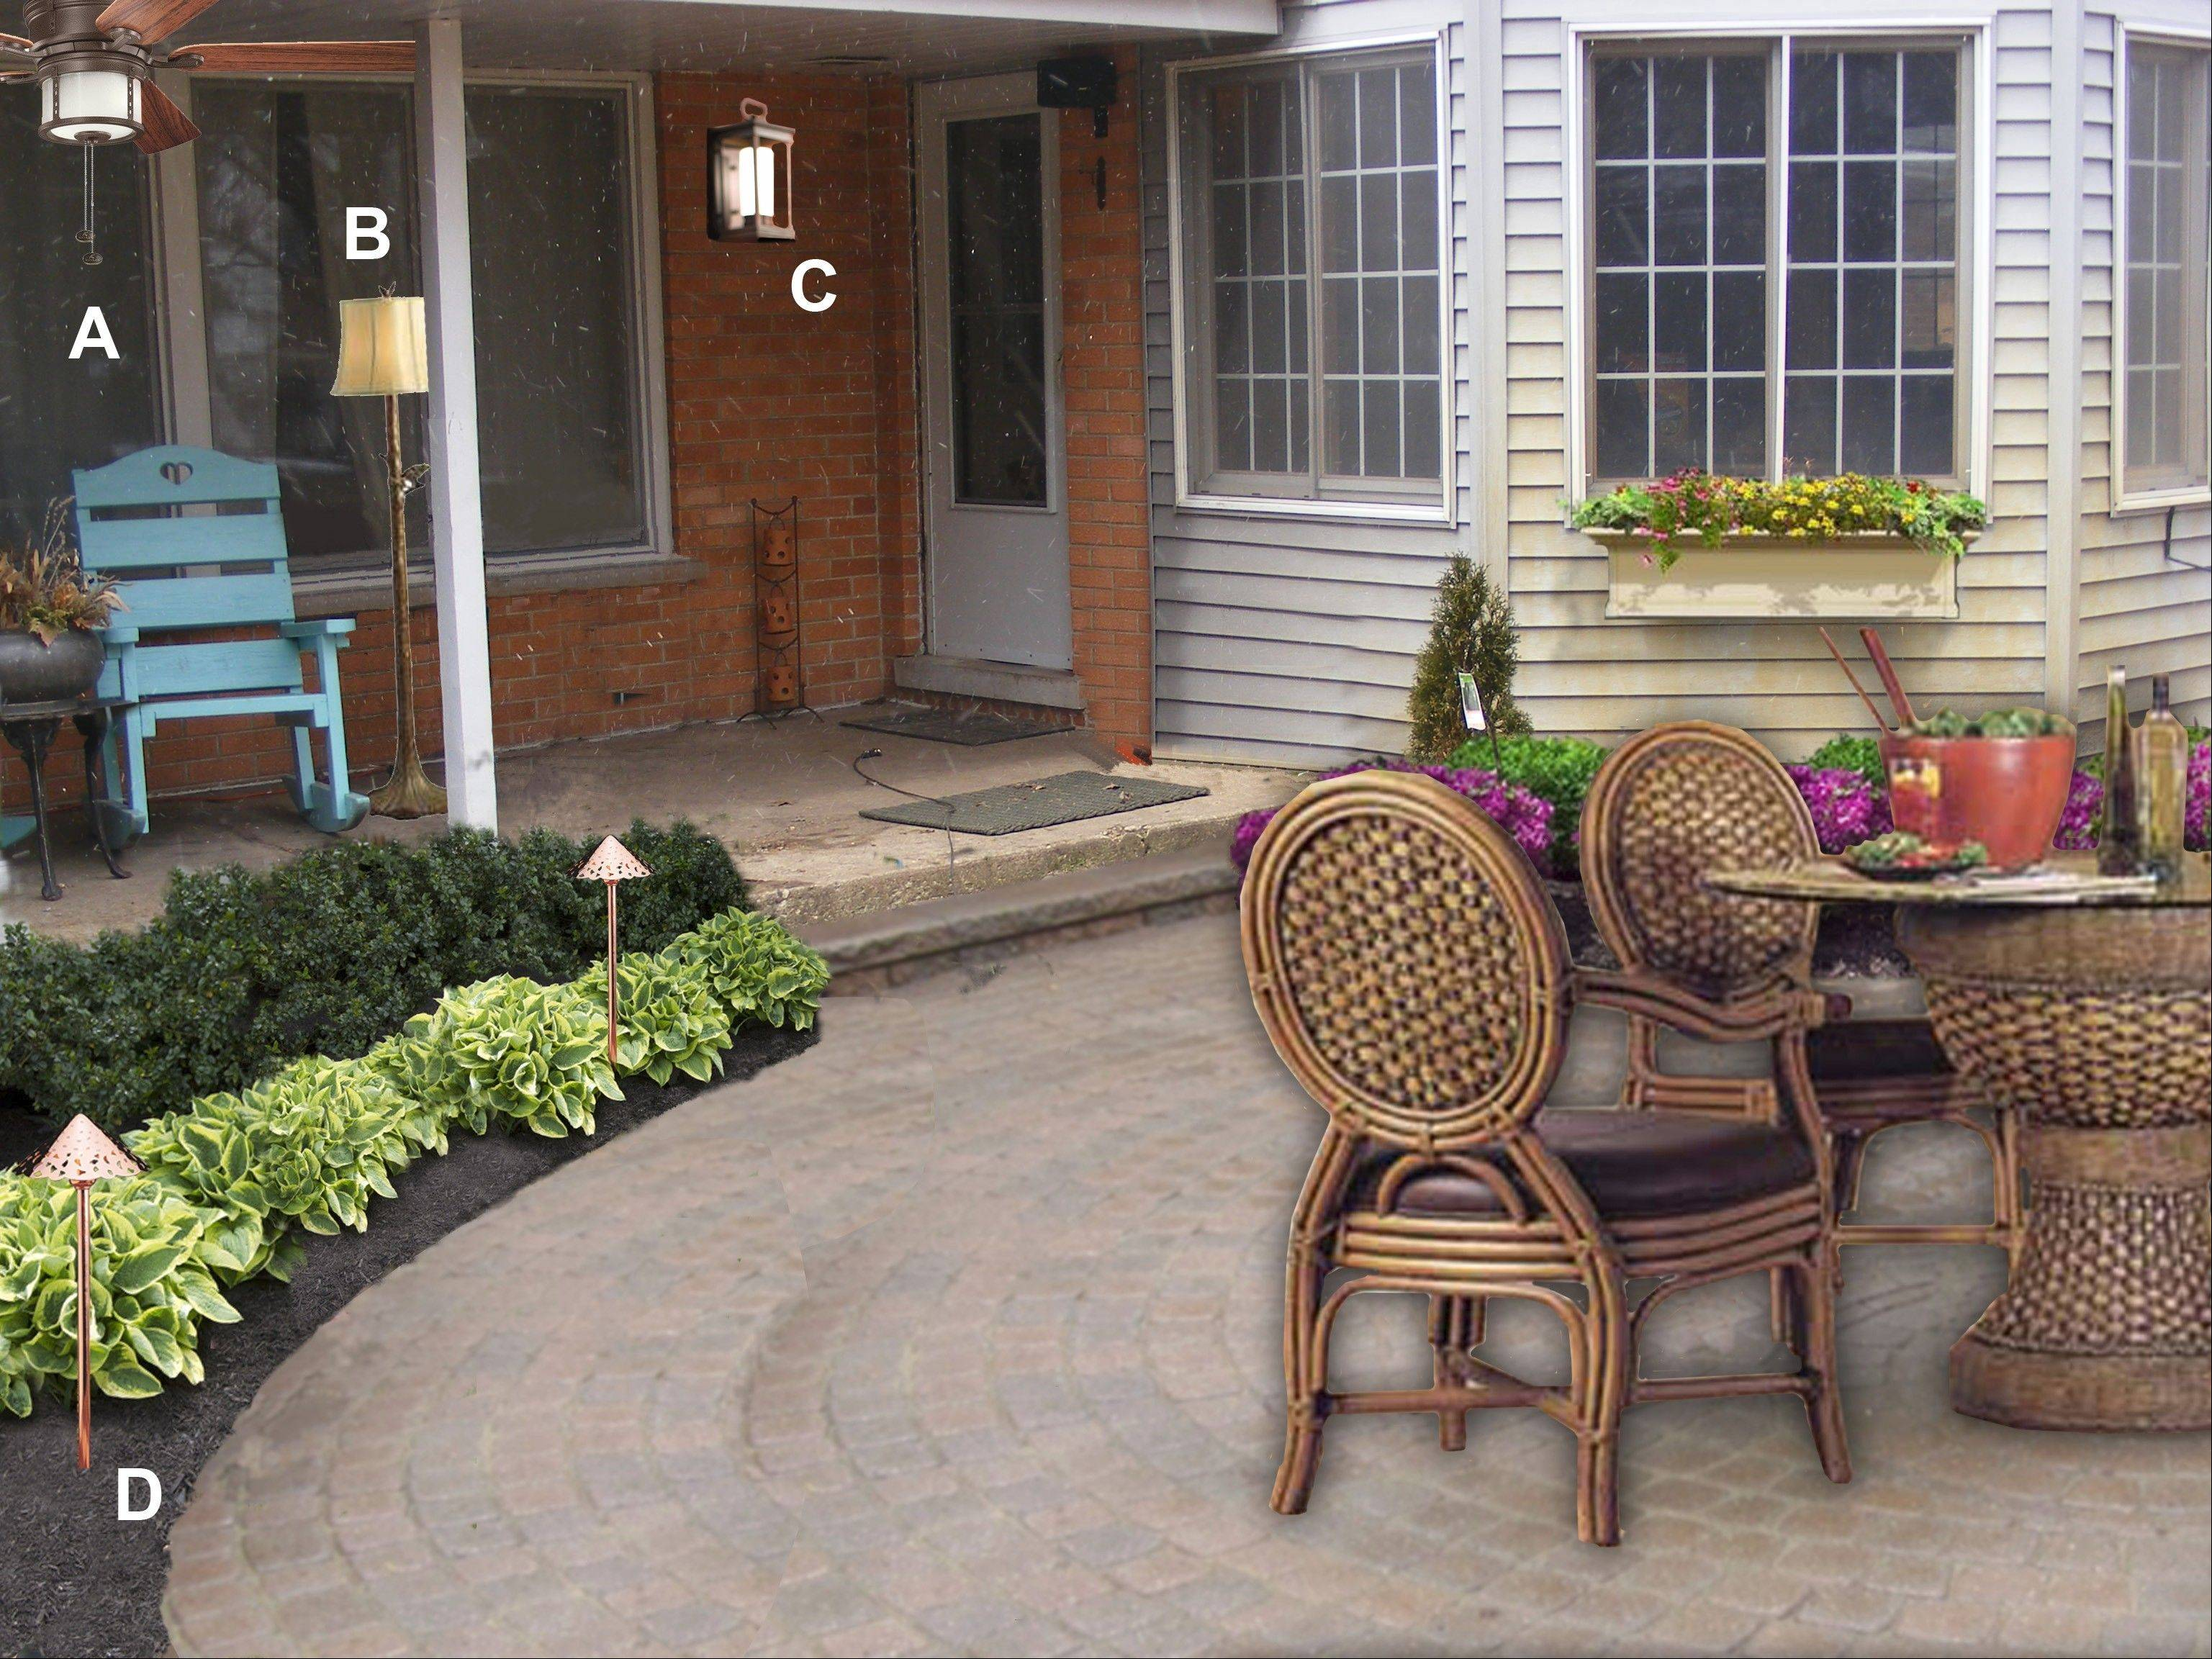 A new paver patio would be topped off with an outdoor ceiling fan under the porch, a coach light for the doorway and LED path lighting to accent the foliage around the patio.